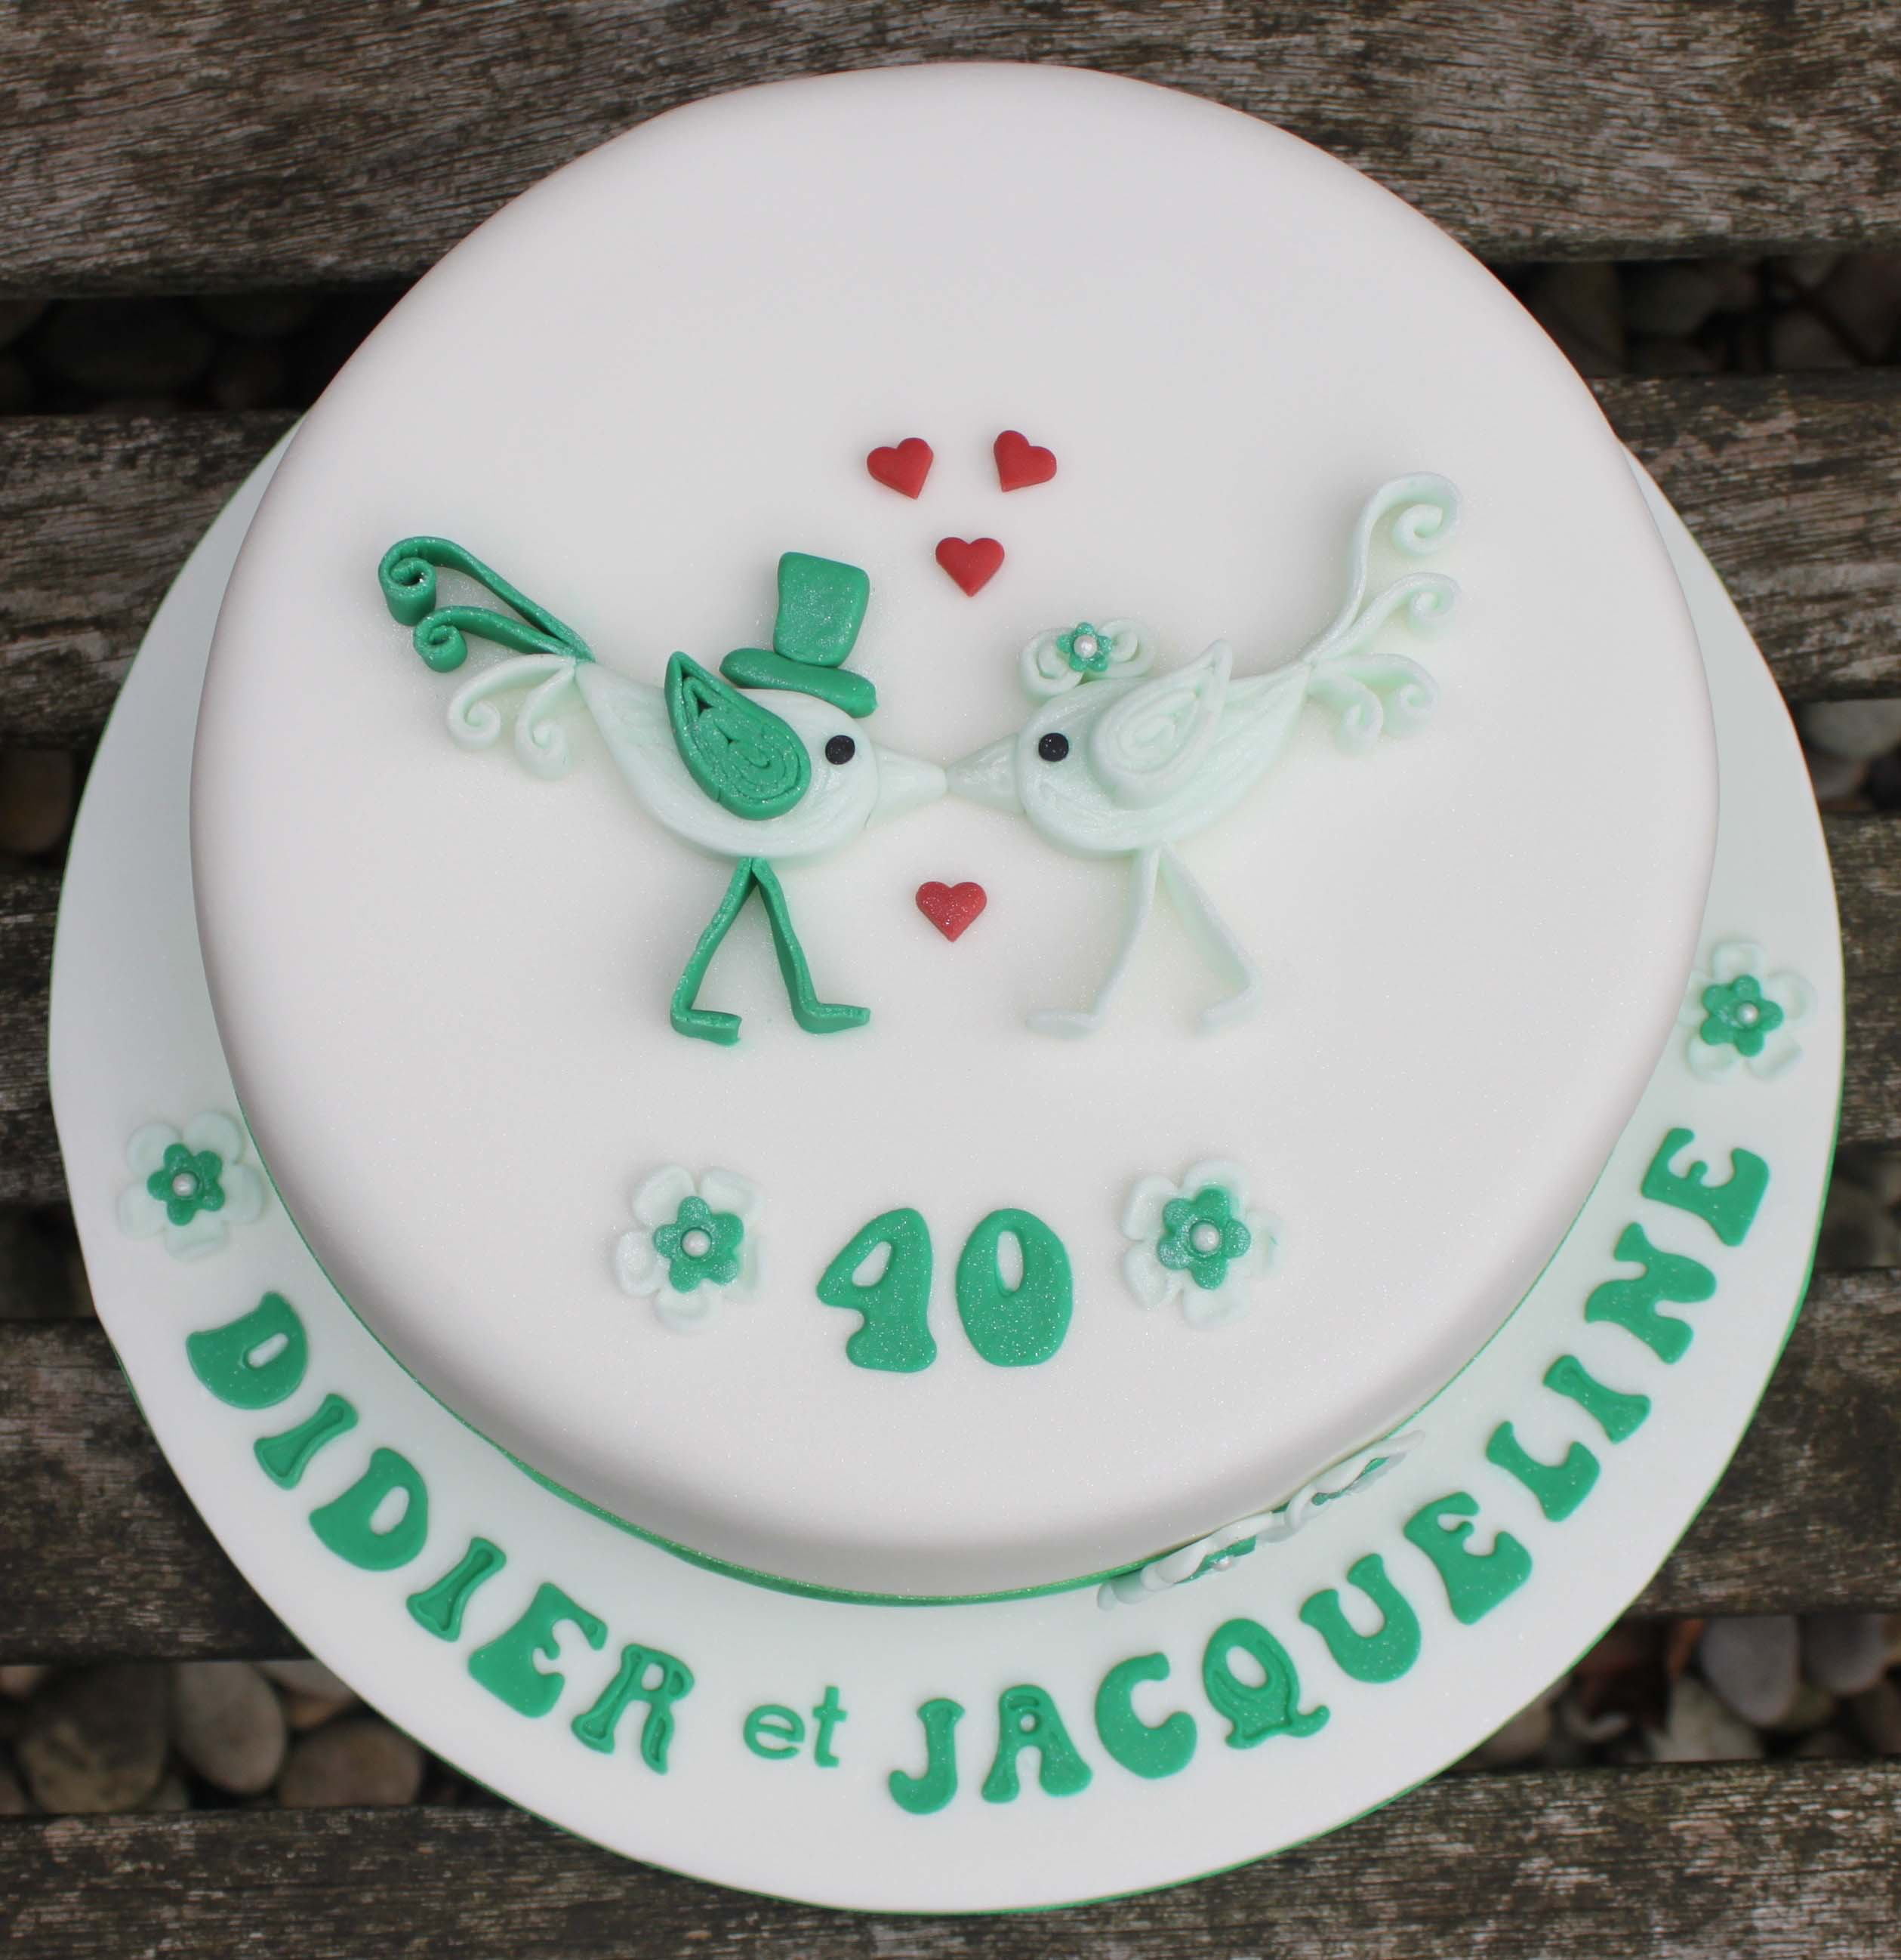 French 40th Emerald anniversary cake